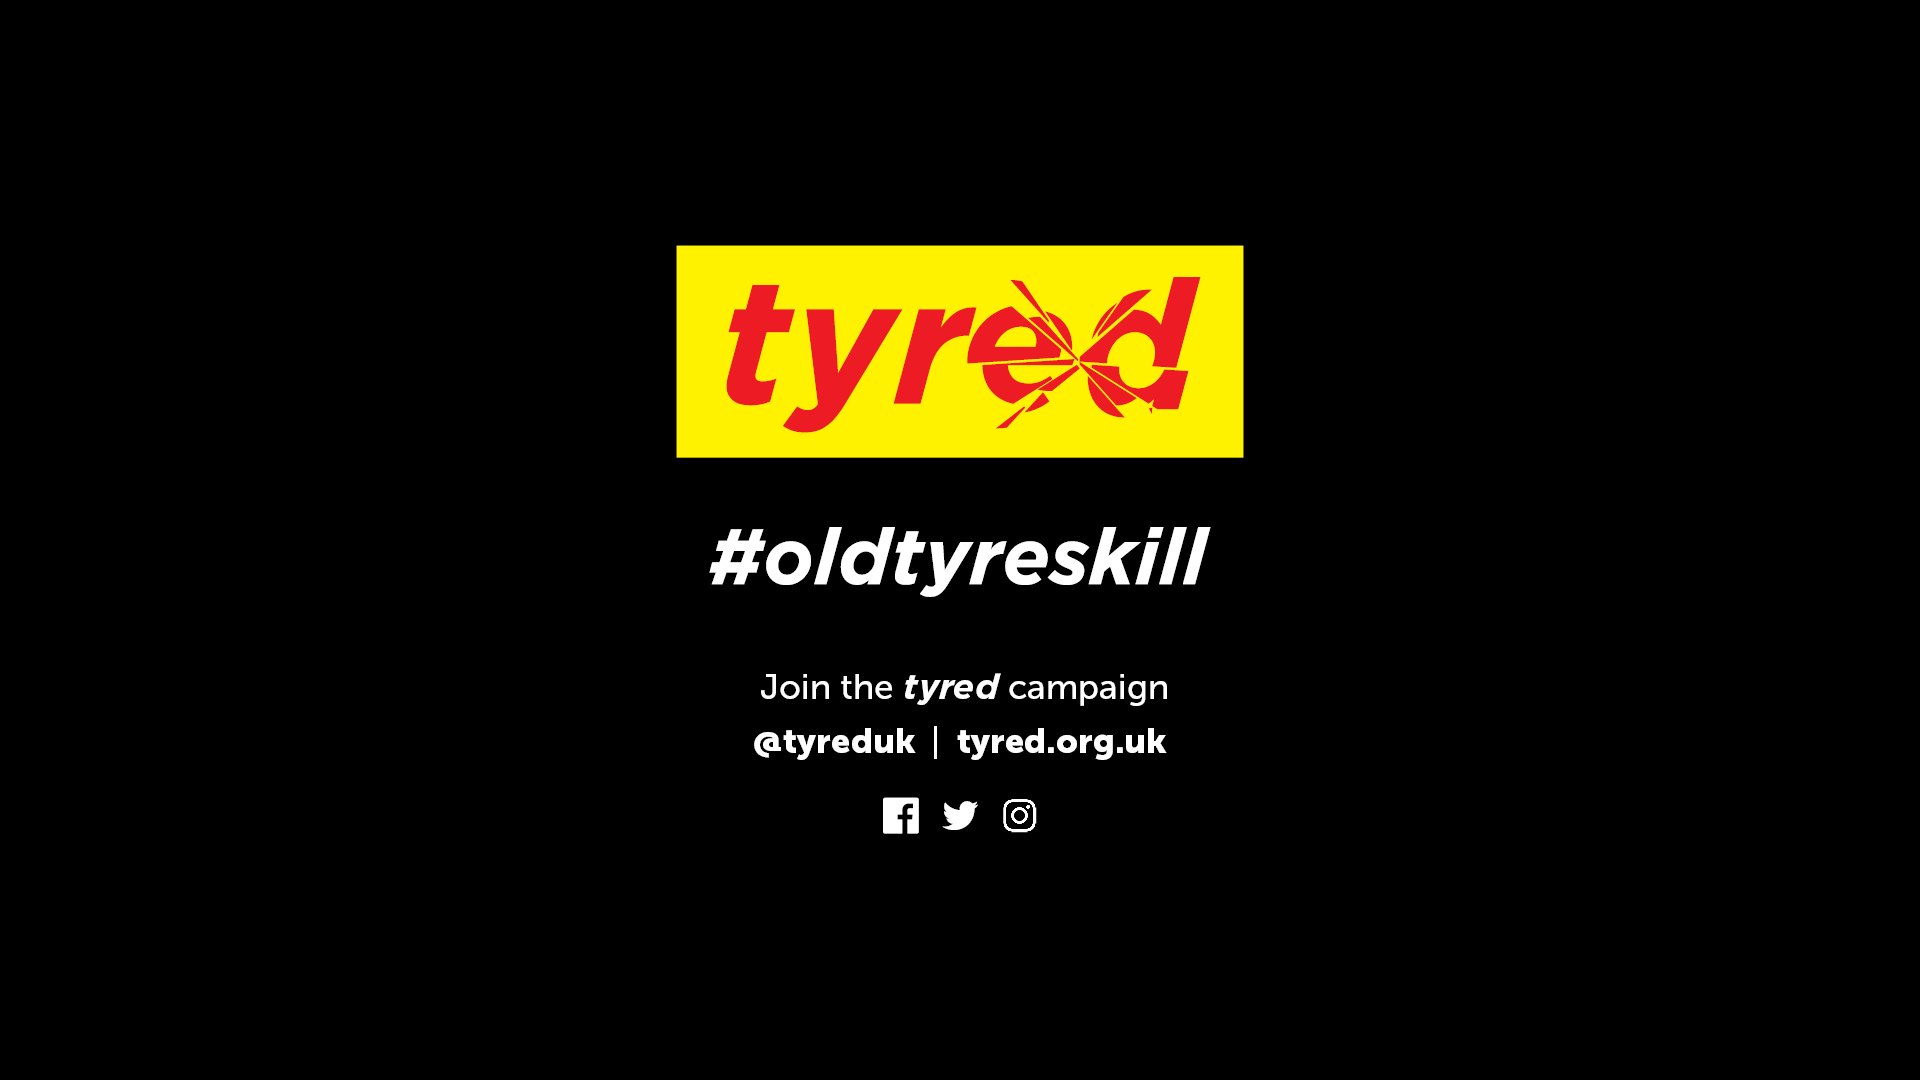 Stockport Council backs tyre safety campaign